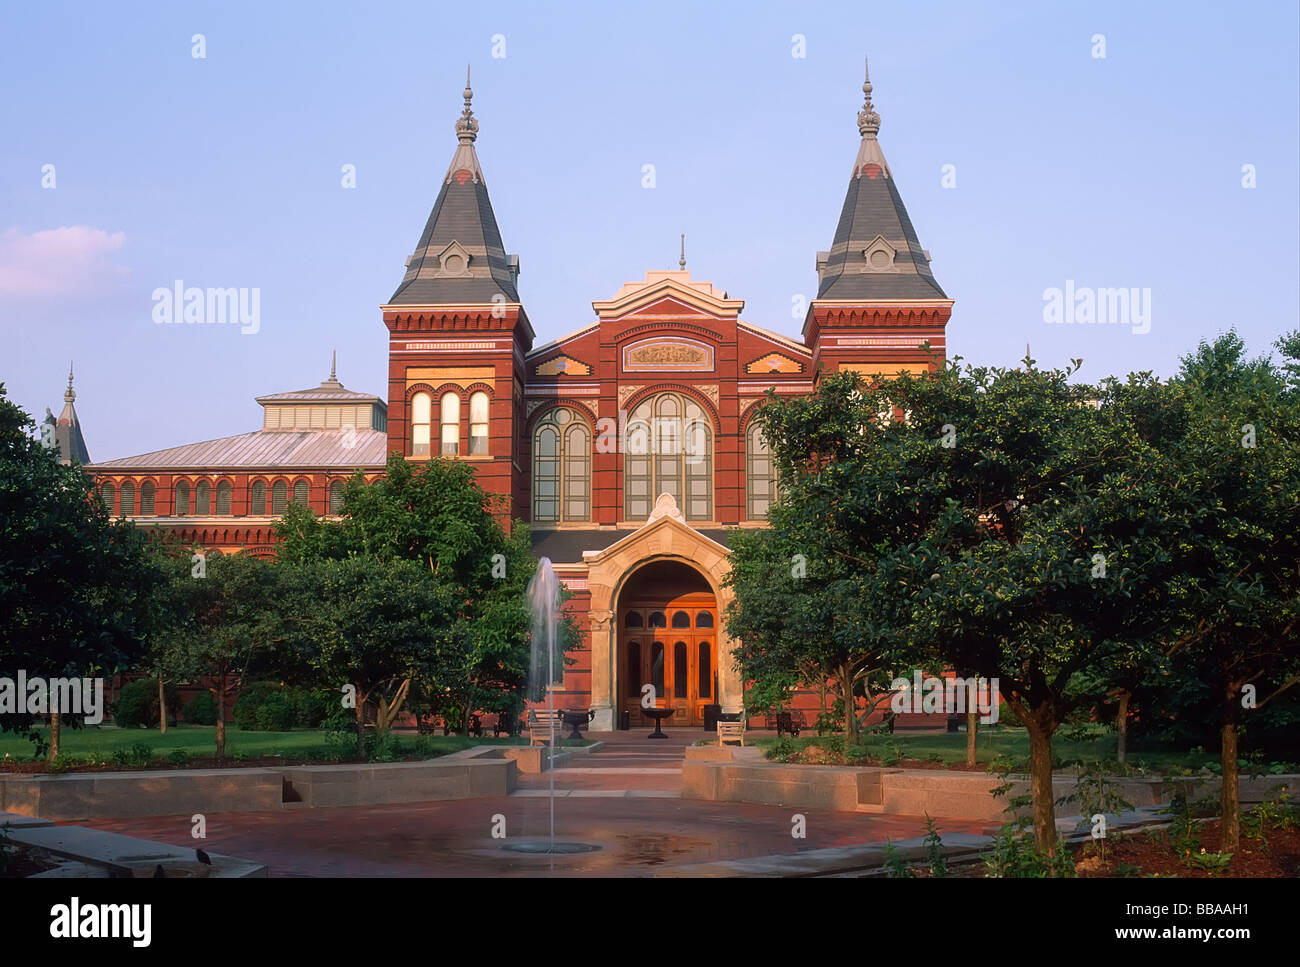 Arts and Industries Building of the Smithsonian Institution in Washington DC - Stock Image